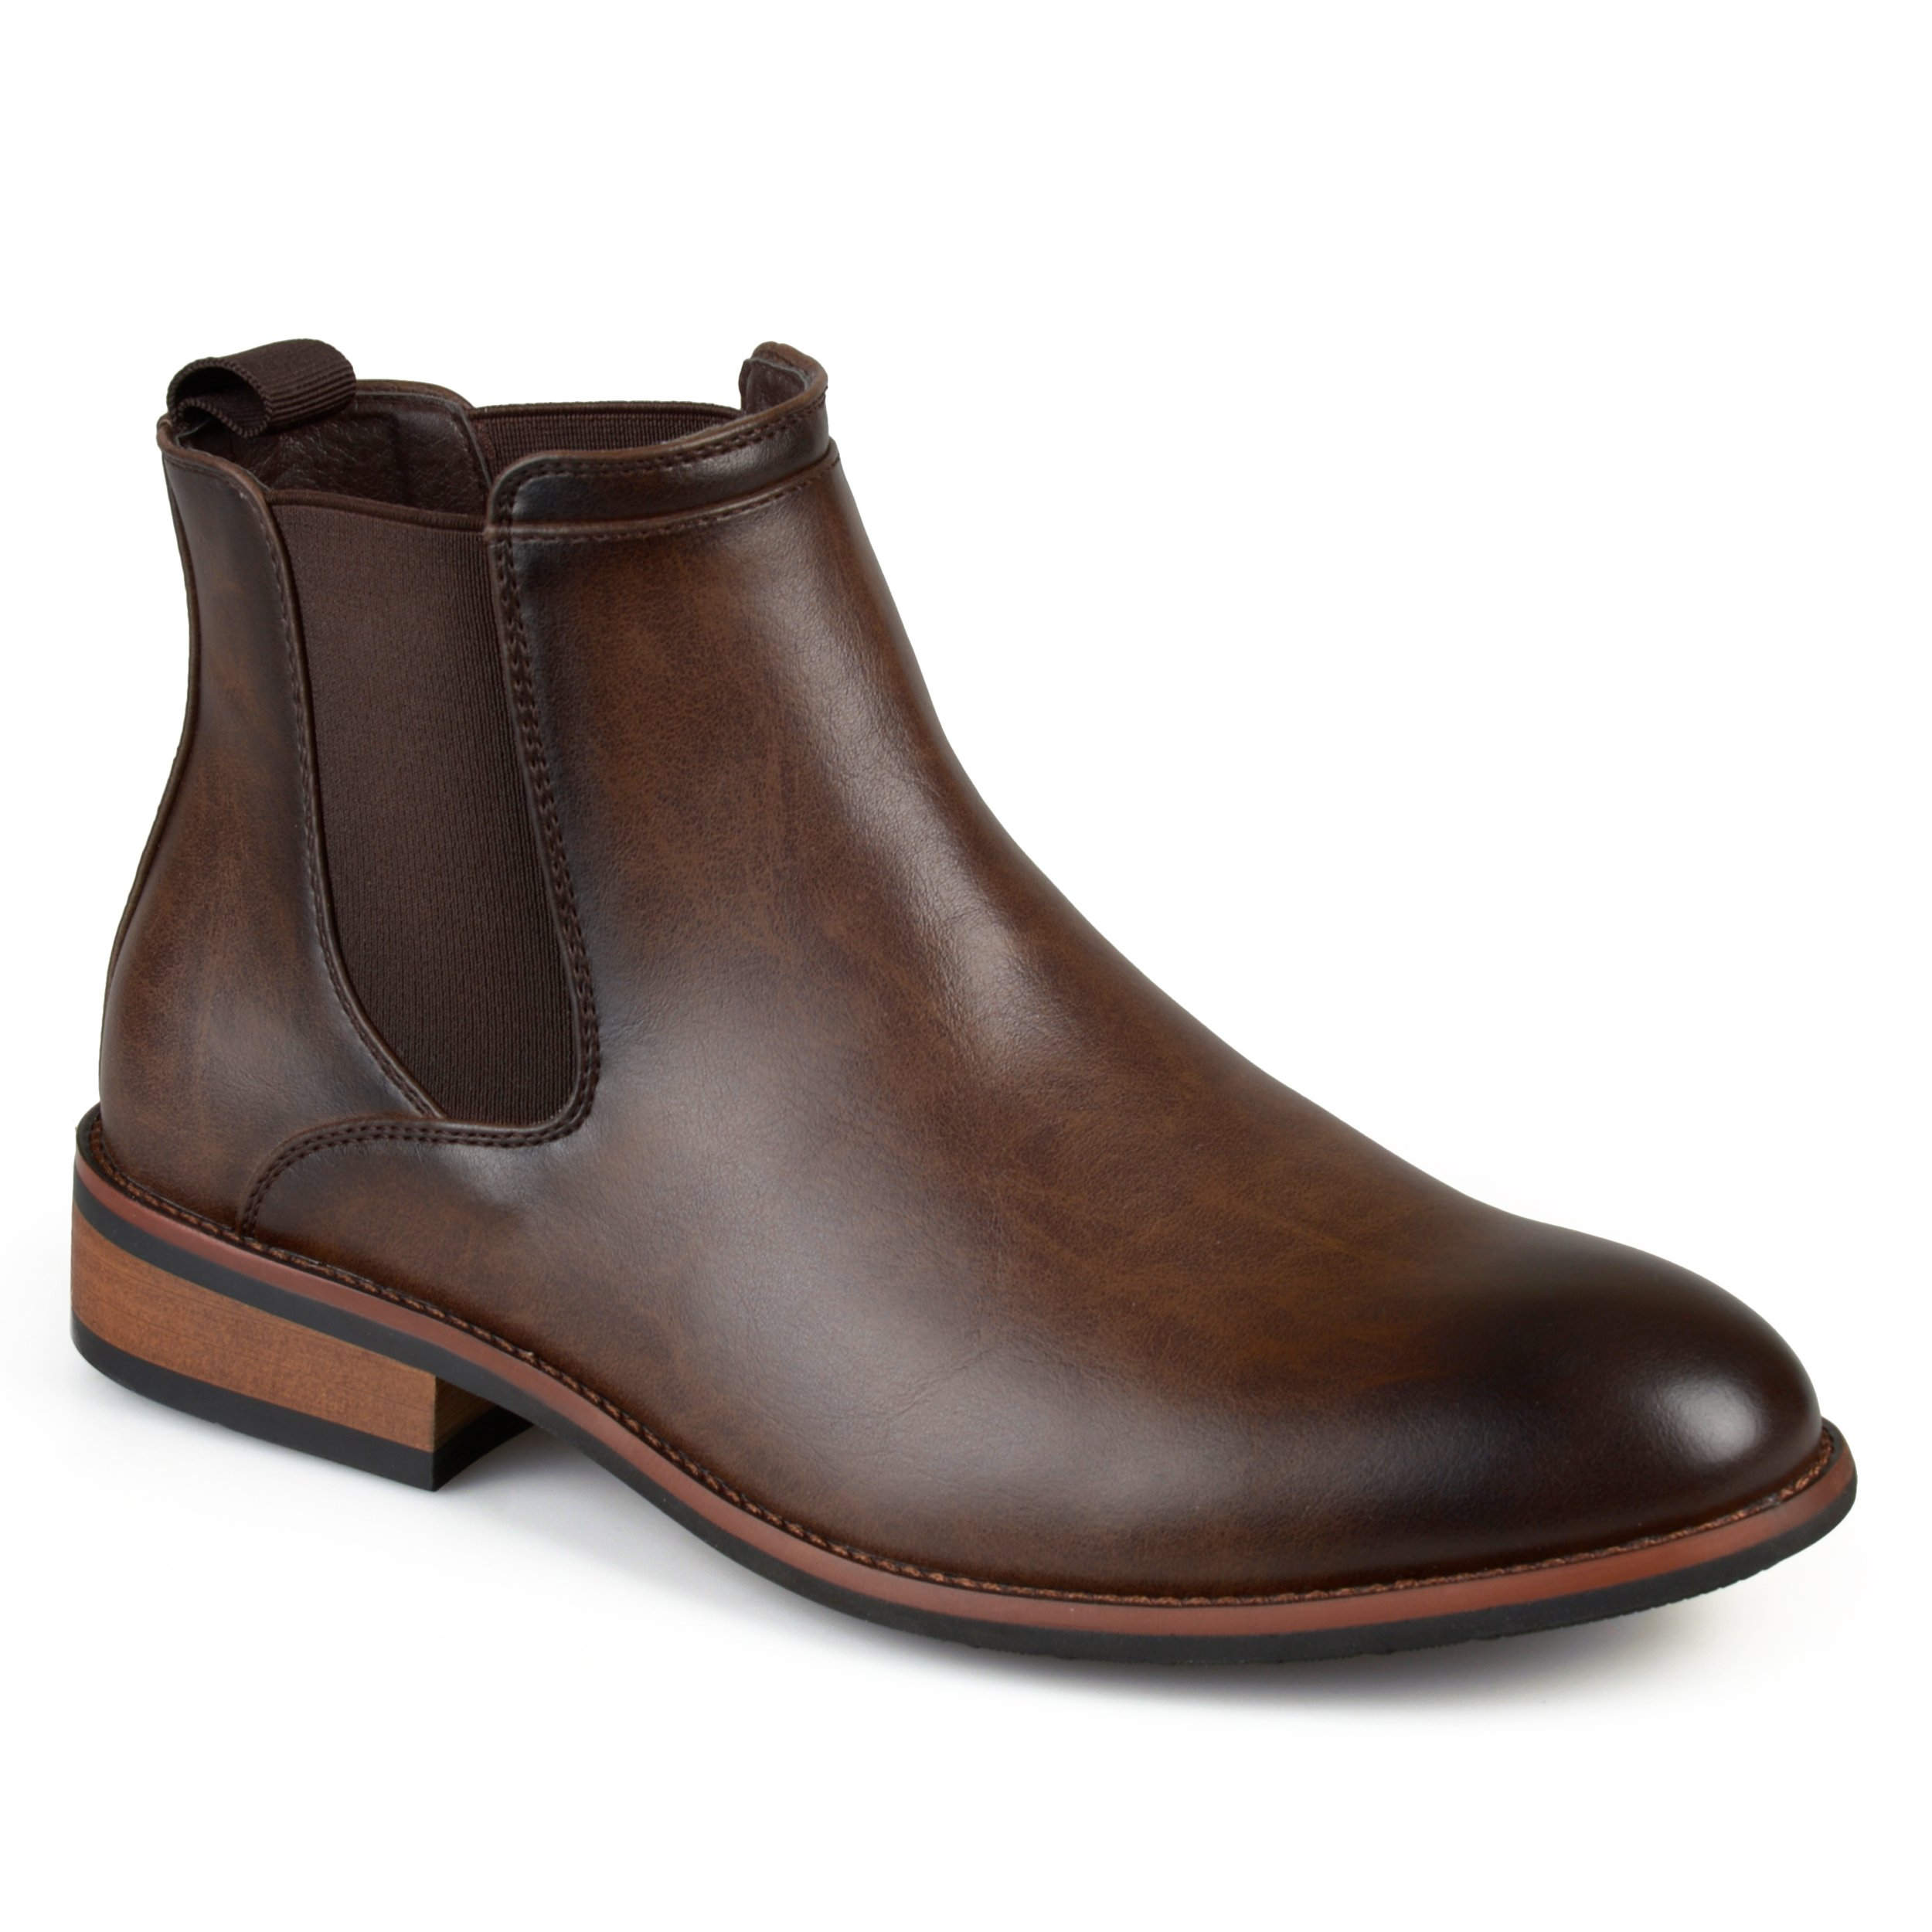 Vance Co. Mens Faux Leather High Top Round Toe Chelsea Dress Boots Brown, 12 Regular US